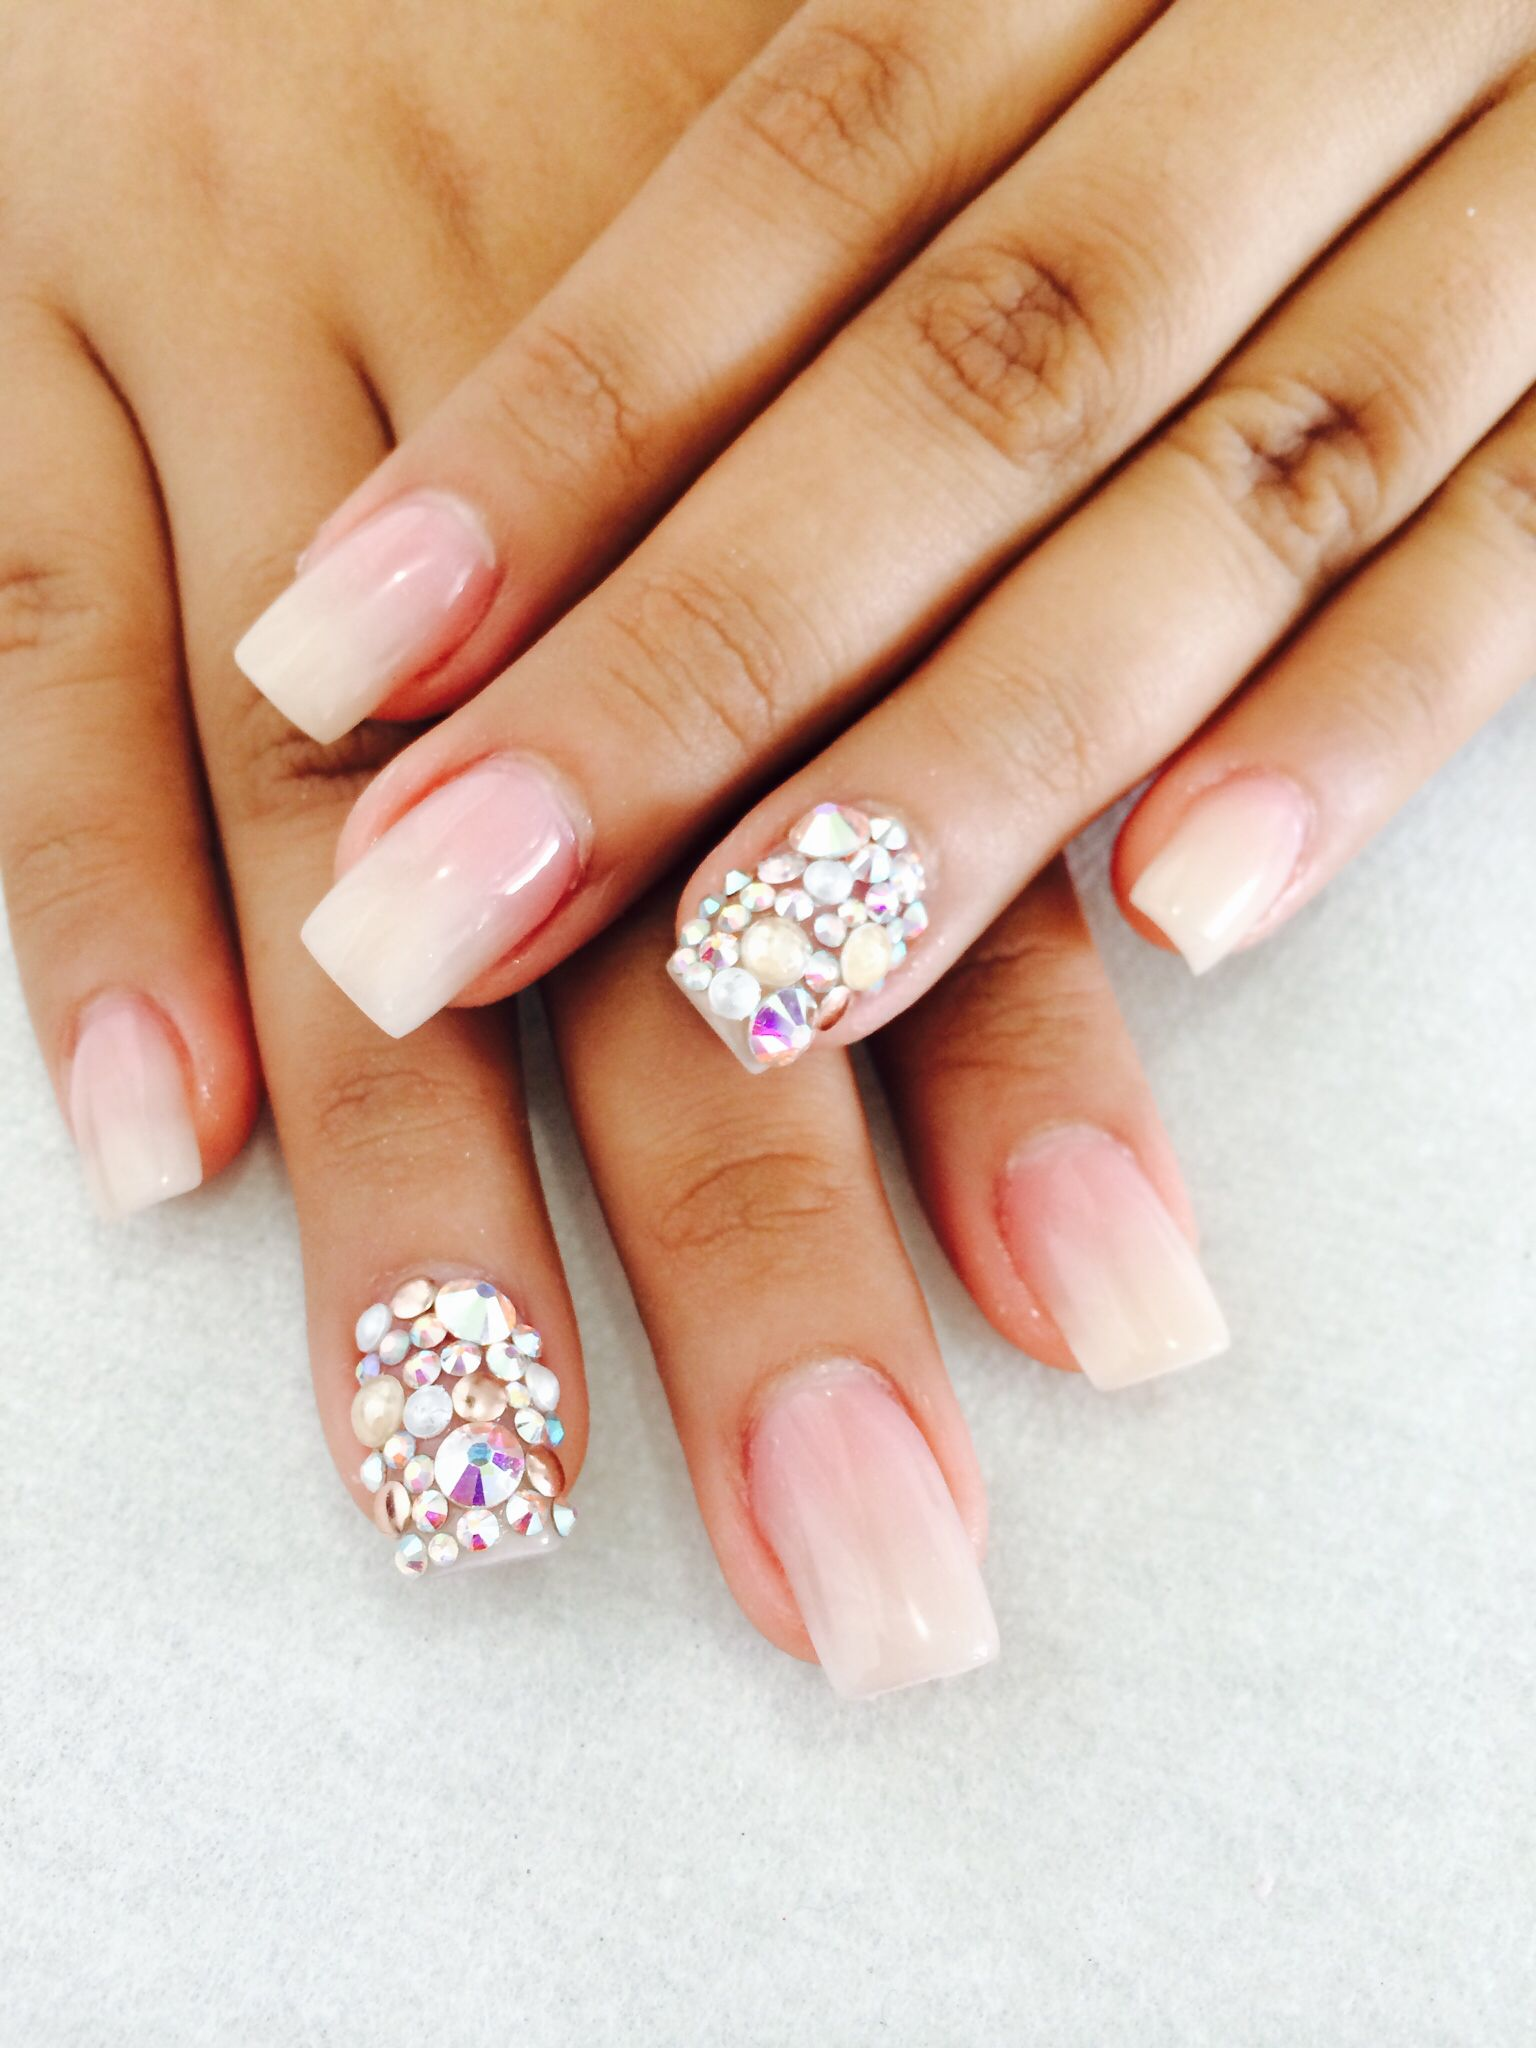 Piedras Con Perlas Nails Pinterest Nails Pretty Nails And How